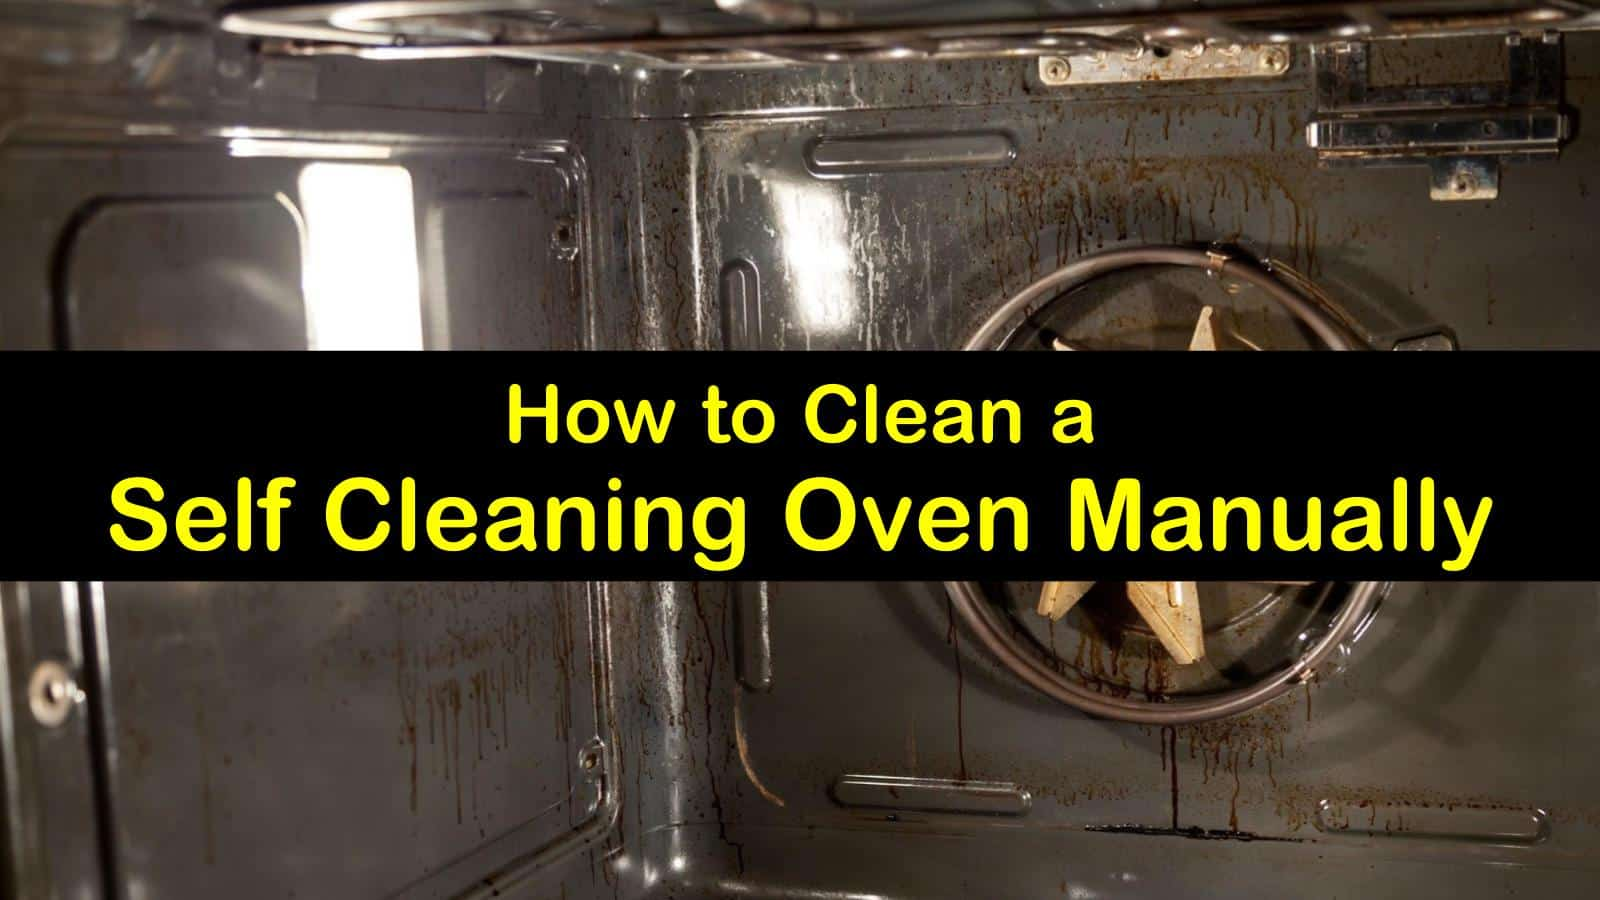 how to clean a self-cleaning oven manually titleimg1